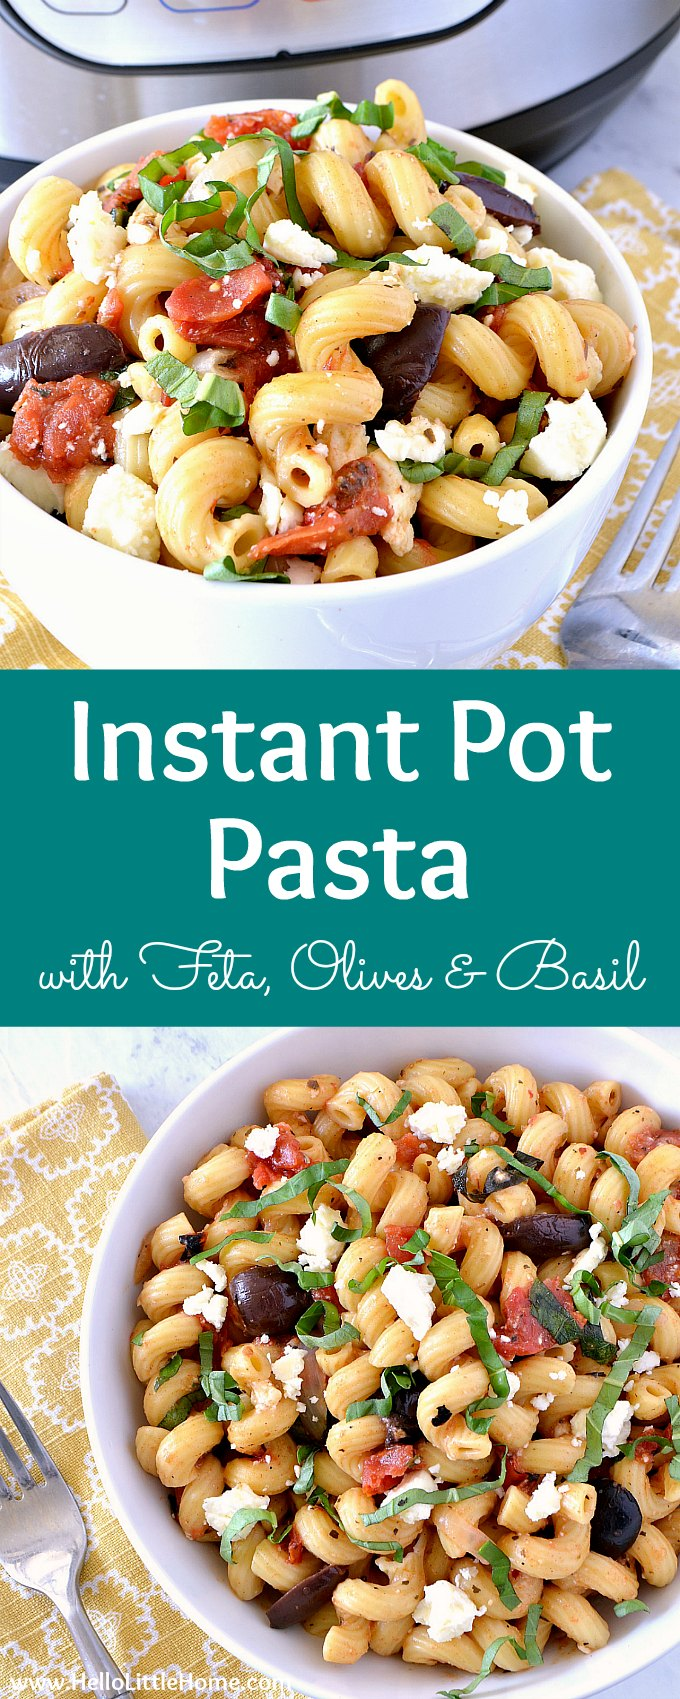 instant pot pasta with feta olives and basil  hello